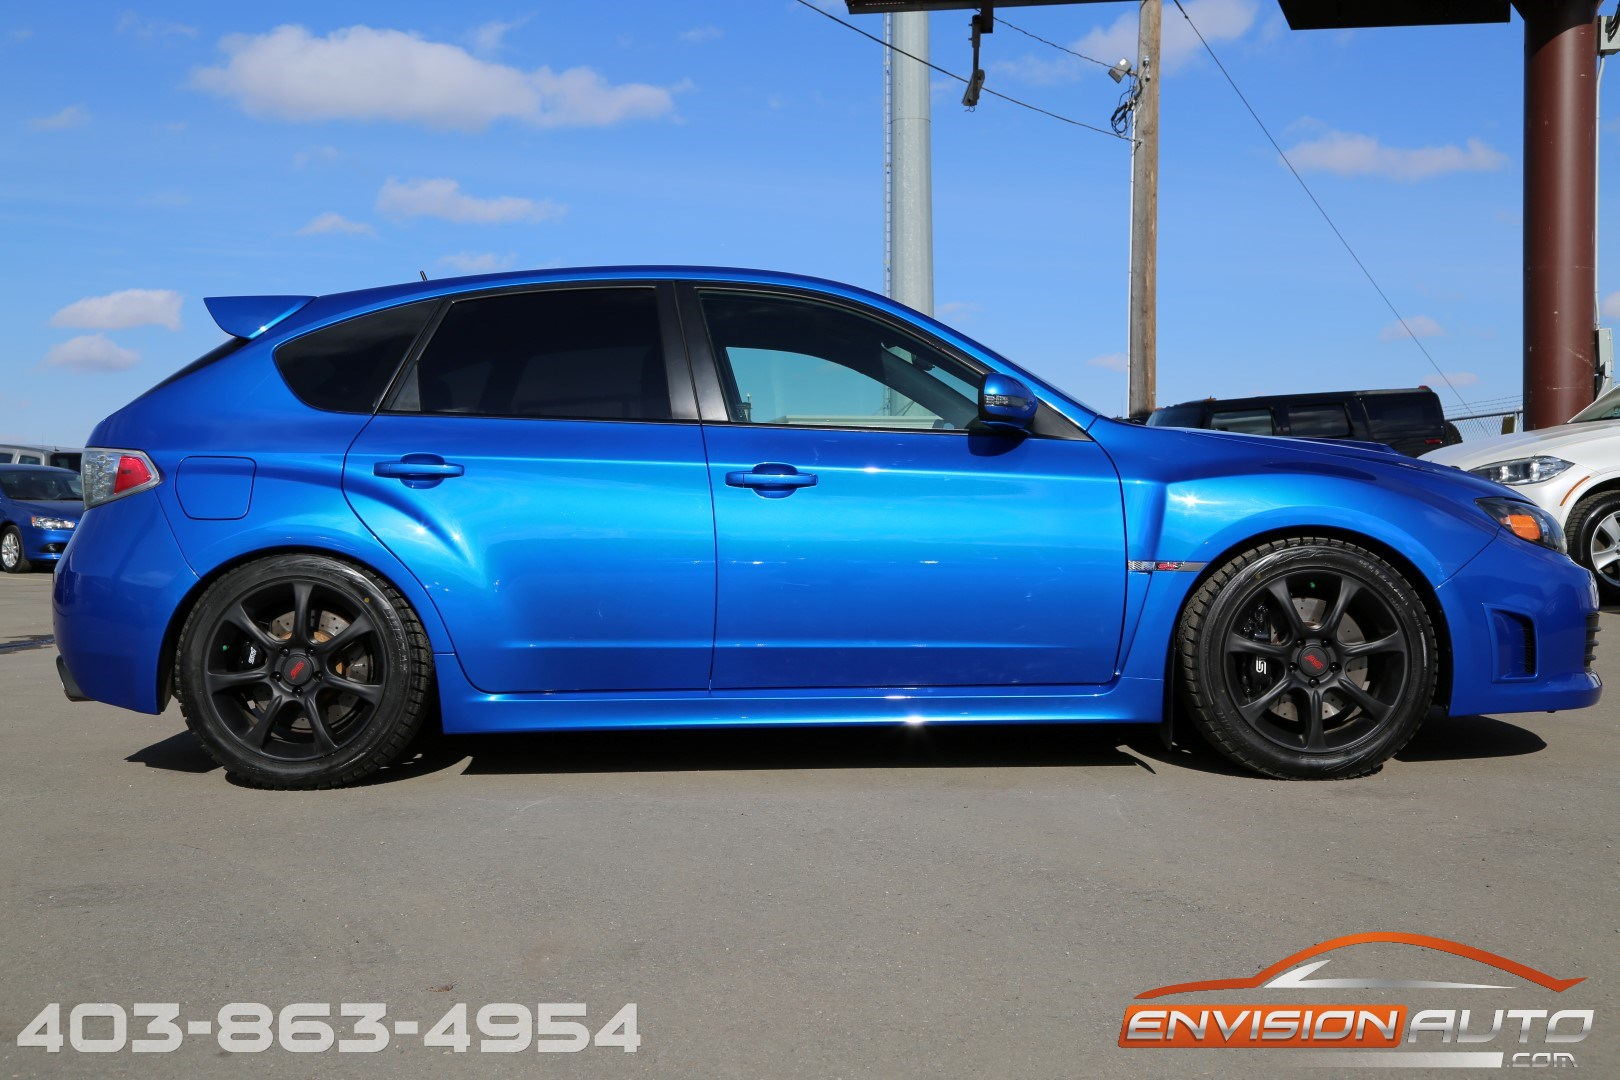 2008 Corvette For Sale >> 2010 Subaru Impreza WRX STI – CUSTOM BUILT ENGINE – ONLY ...